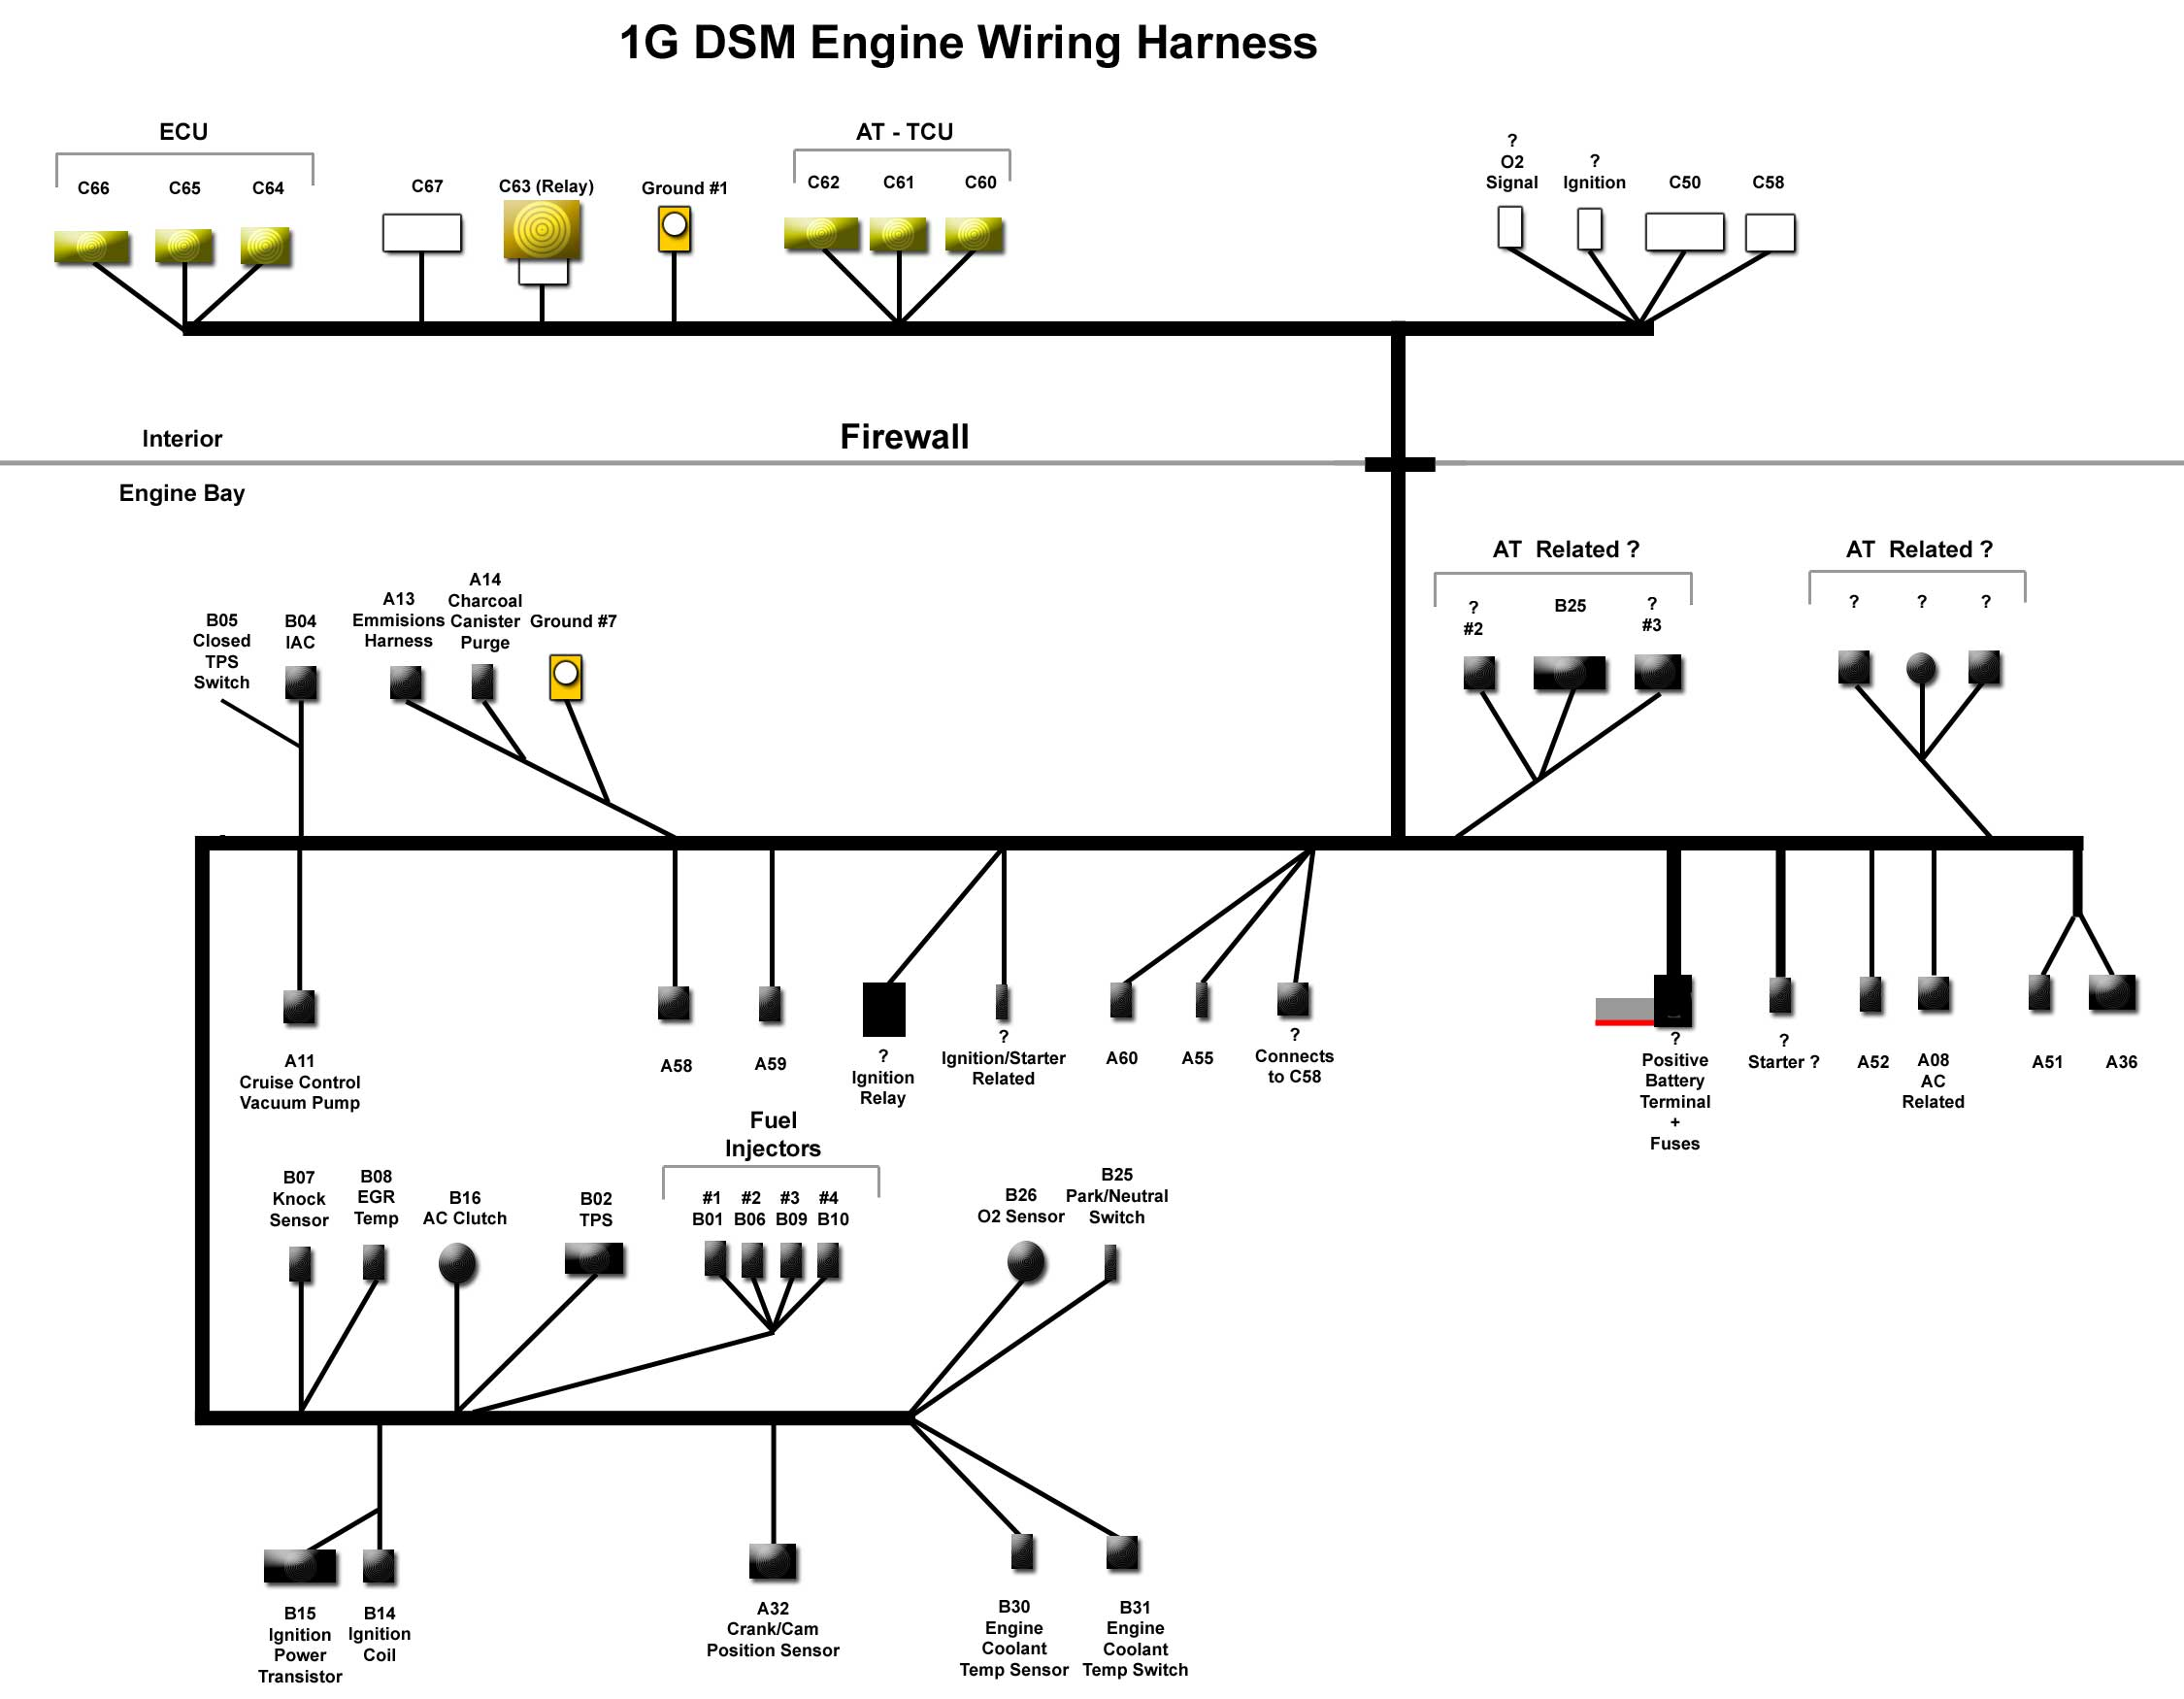 1G DSM EngineHarness 1gb dsm 4g63 turbo wiring harness diagram wiring harness diagram at bakdesigns.co